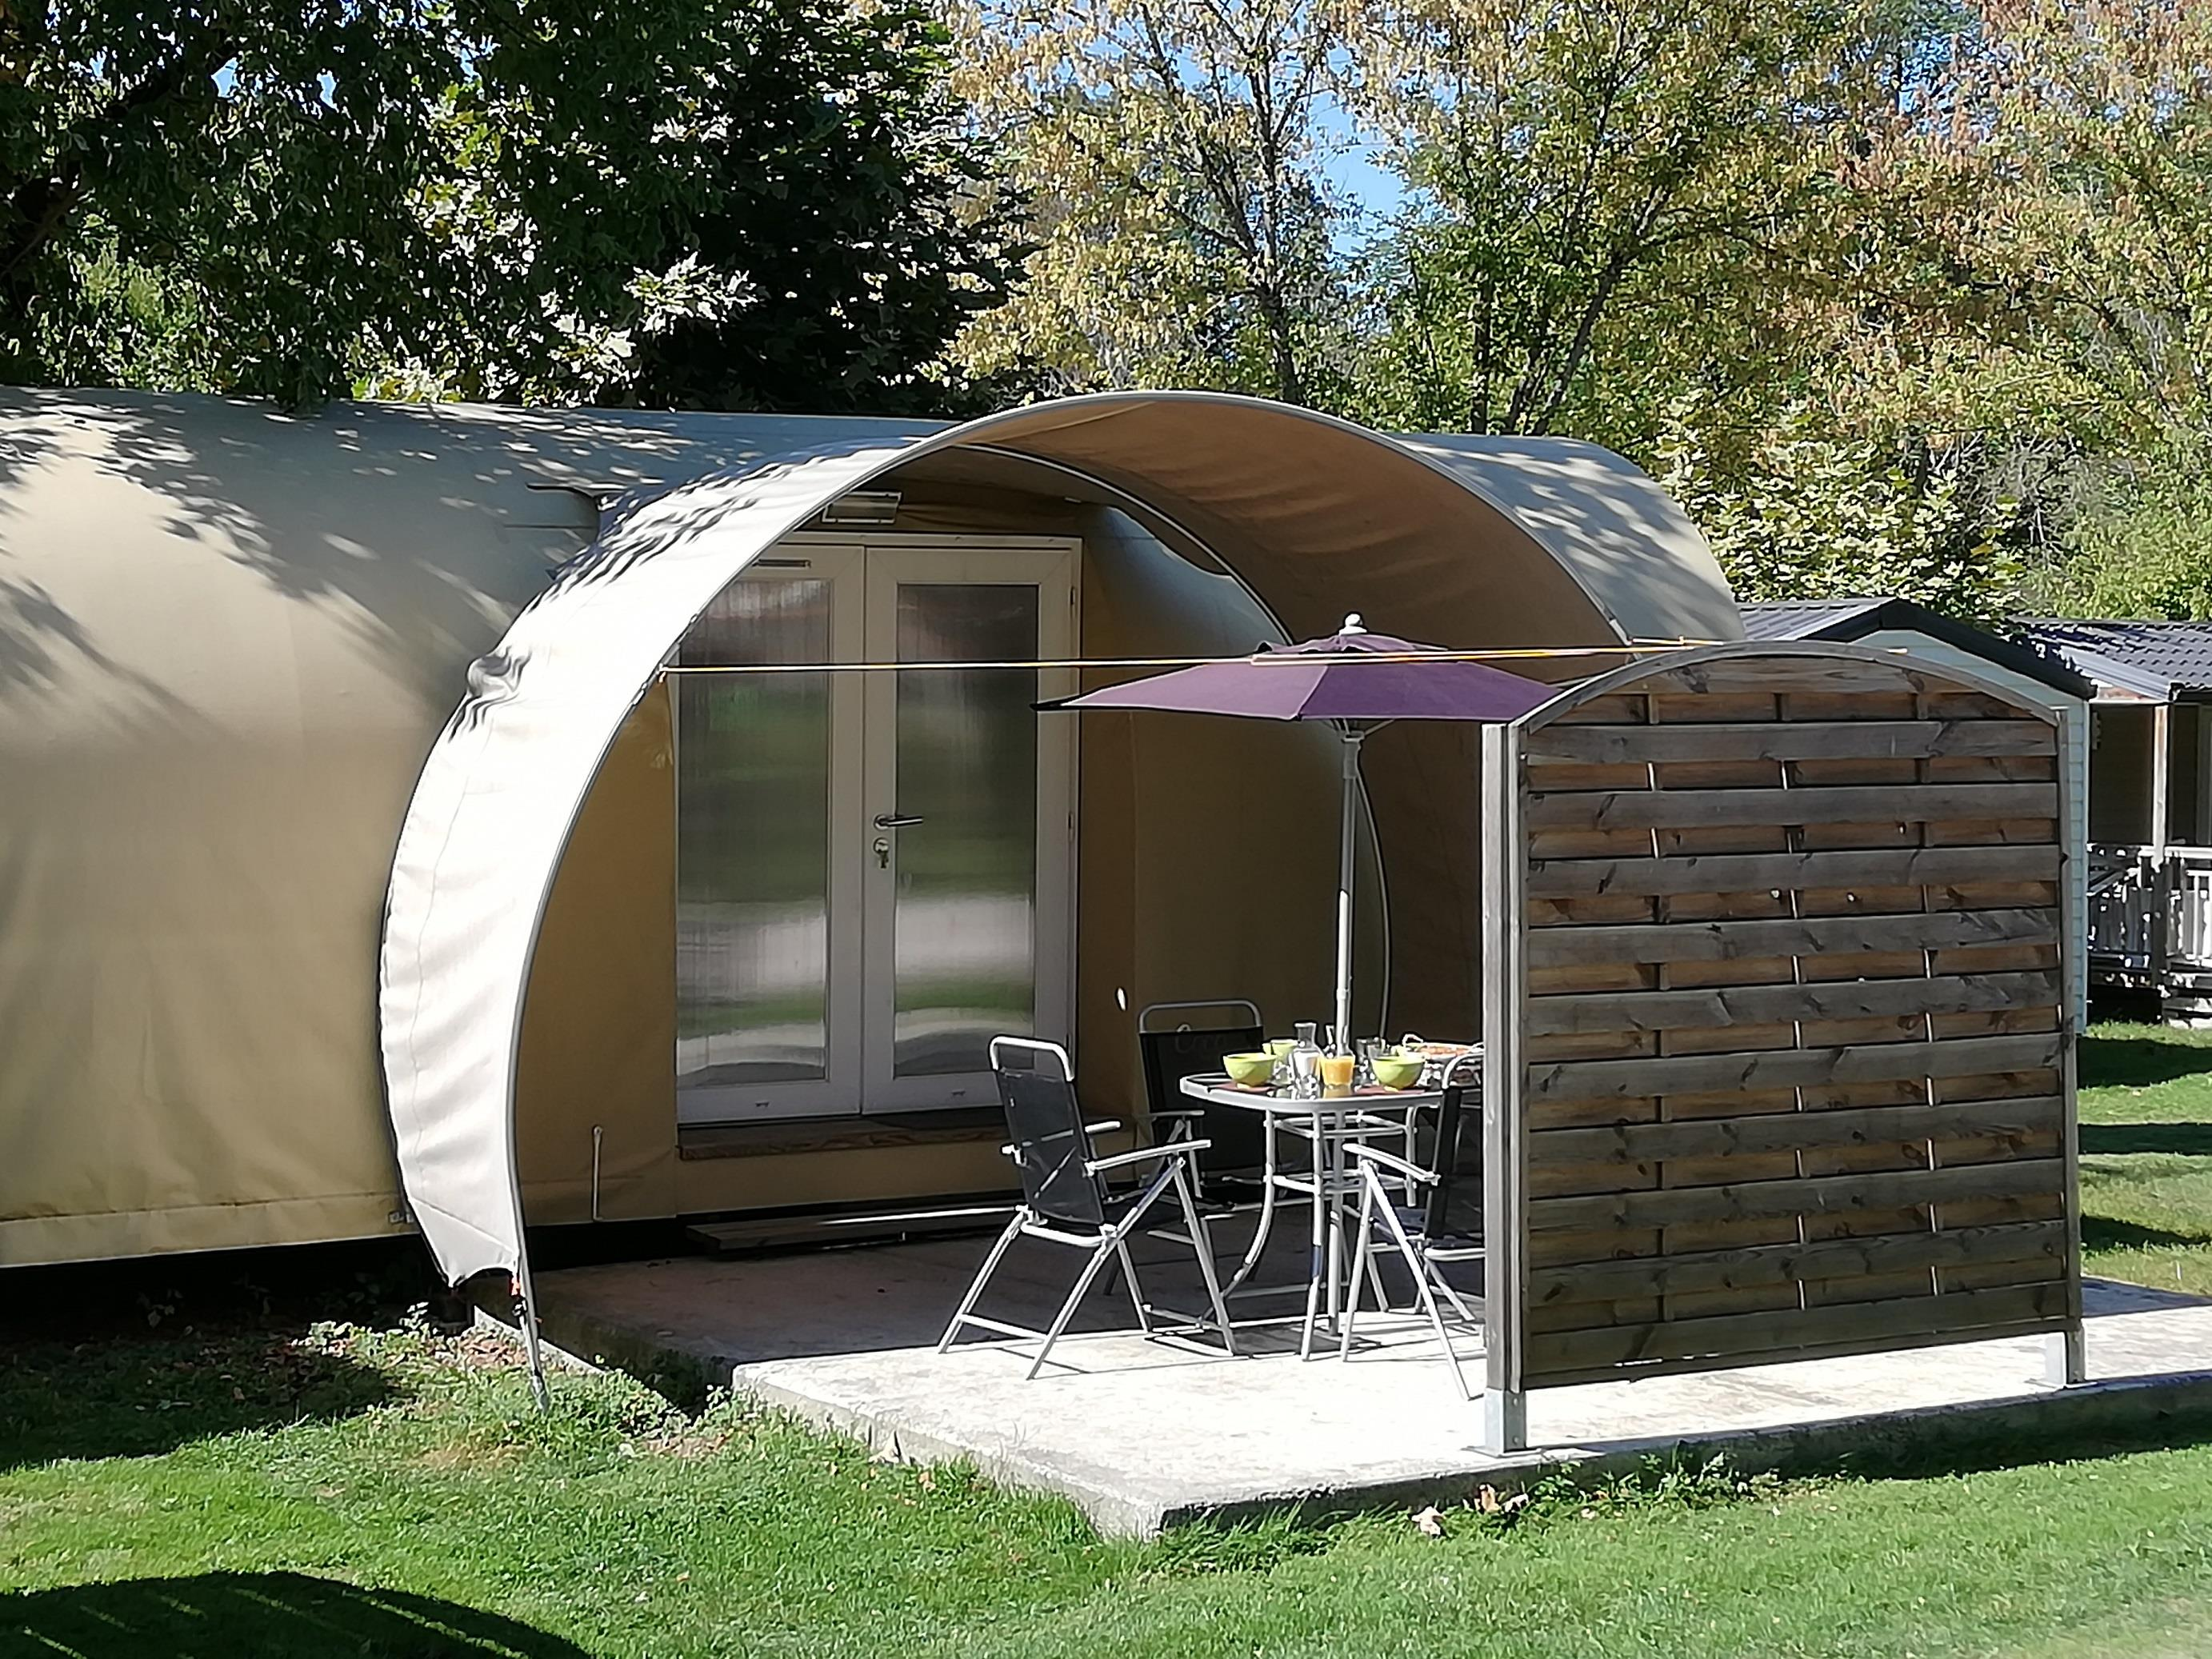 Location - Insolite Cocosweet - Camping Parc d'Audinac les Bains